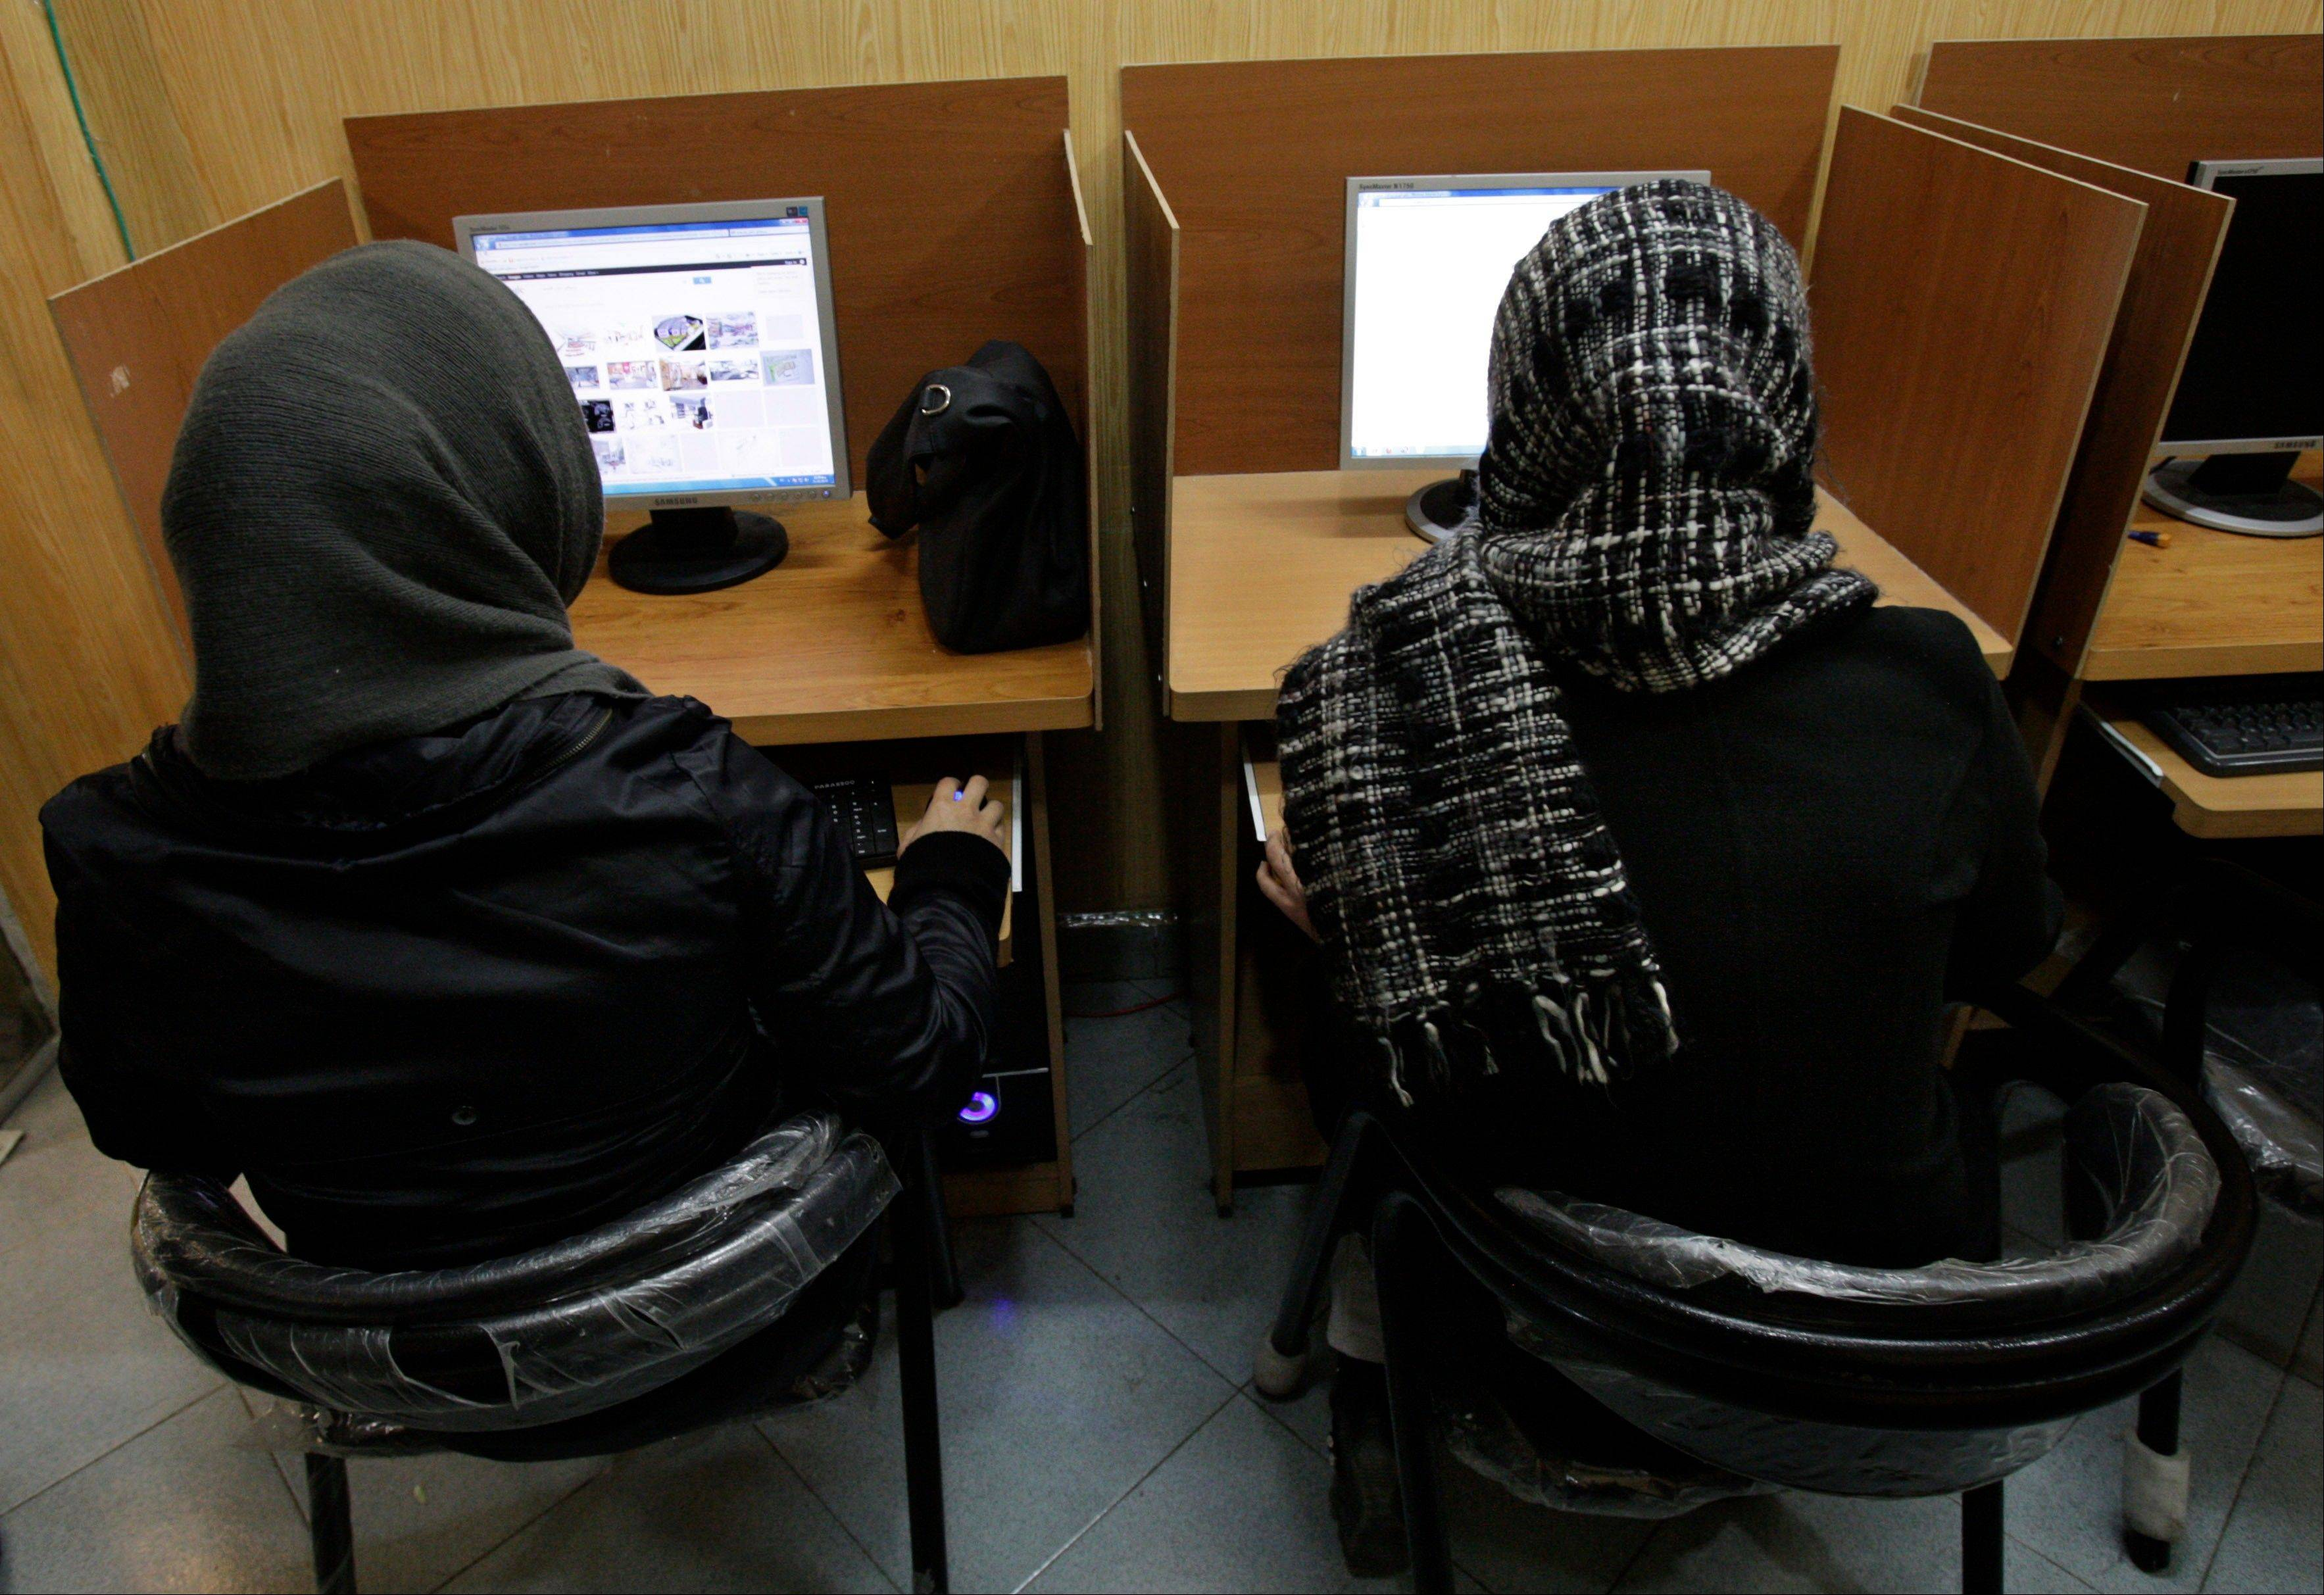 In this Feb. 13, 2012, file photo, Iranian women use computers at an Internet cafe in central Tehran. Iran's cyber monitors often tout their efforts to fight the Westís 'soft war' of influence through the Web, but trying to ban Google's popular Gmail may have gone too far with complaints coming even from email-starved parliament members.